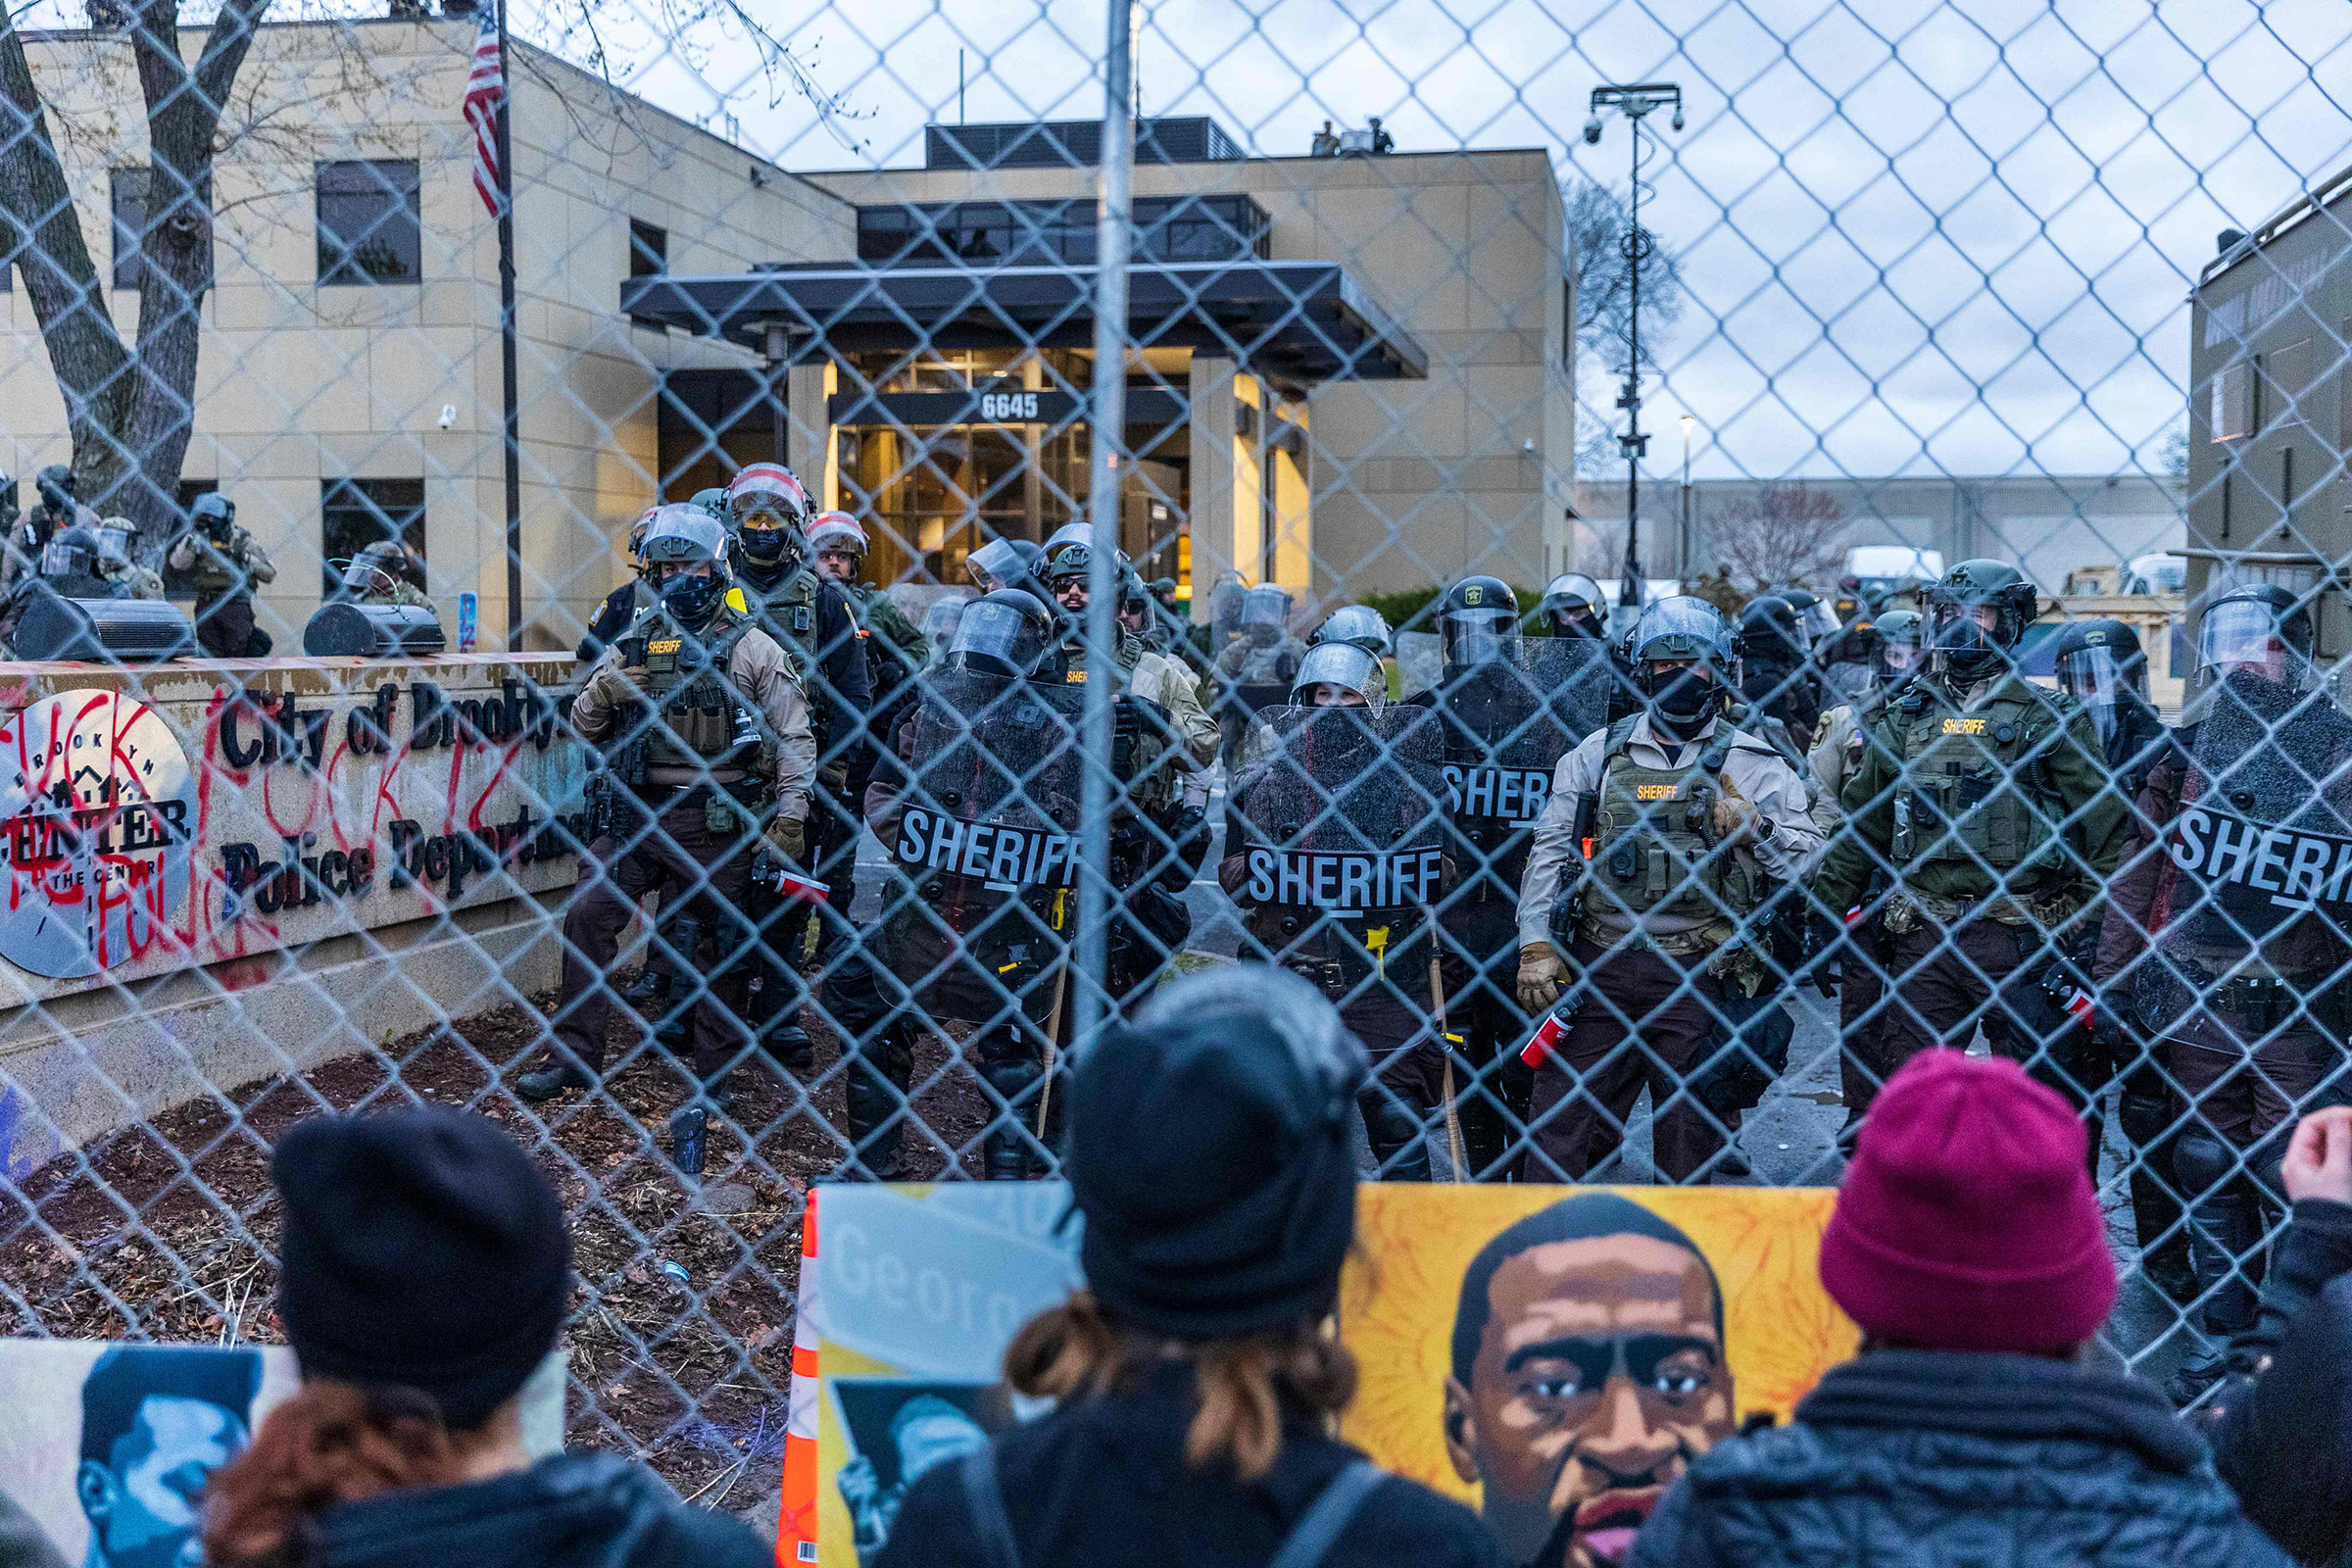 Sheriff officers stand guard outside the Brooklyn Center police station as demonstrators stand on the other side of the chain-link fence protesting the death of Daunte Wright who was shot and killed by a police officer in Brooklyn Center, Minn. on April 14, 2021.